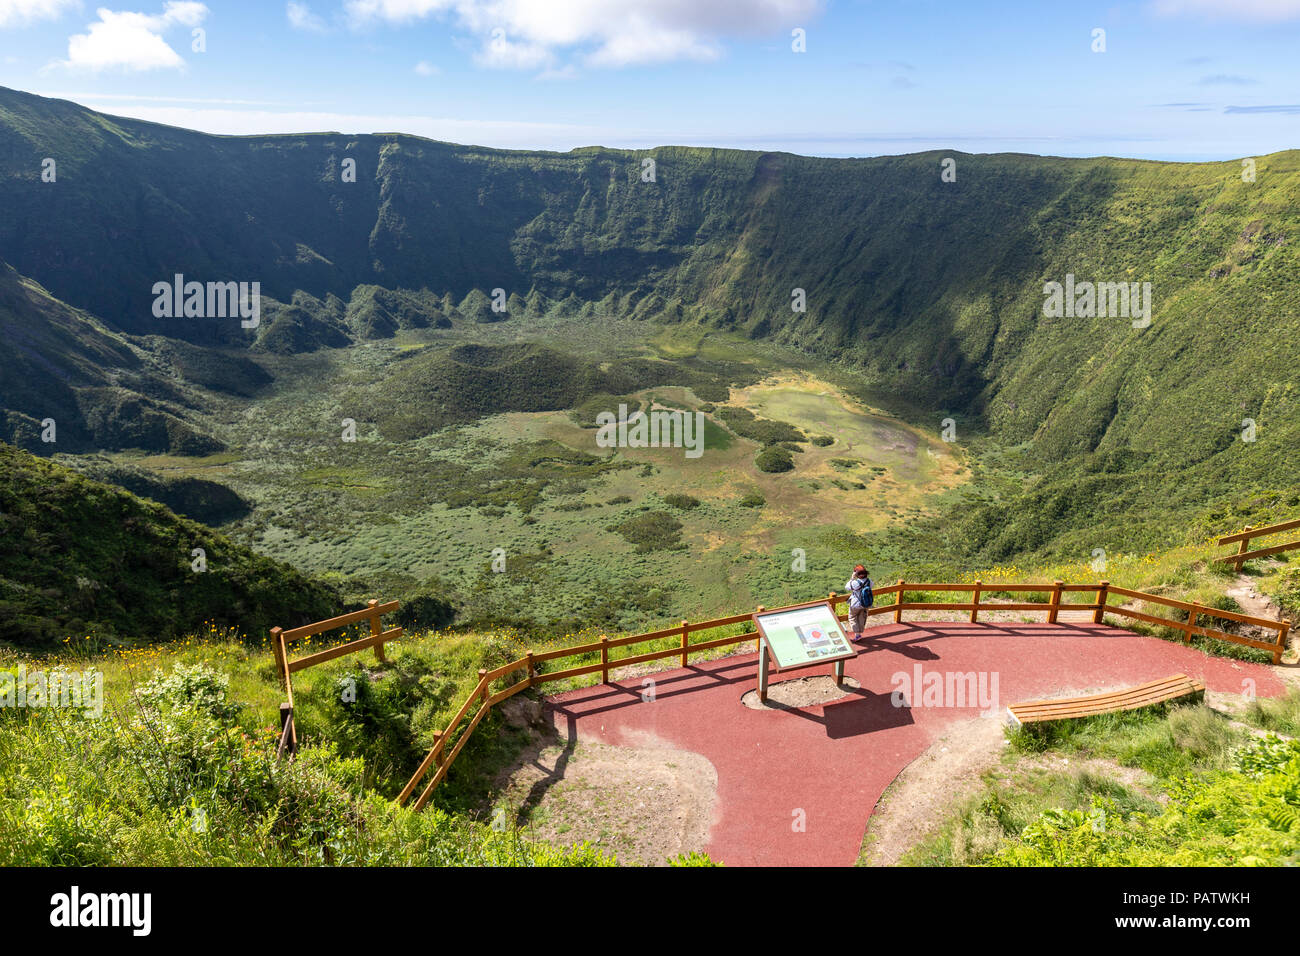 Tourist looking in the viewpoint of the Caldeira do Cabeço Gordo, stratovolcano , in Faial island, Azores, Portugal - Stock Image